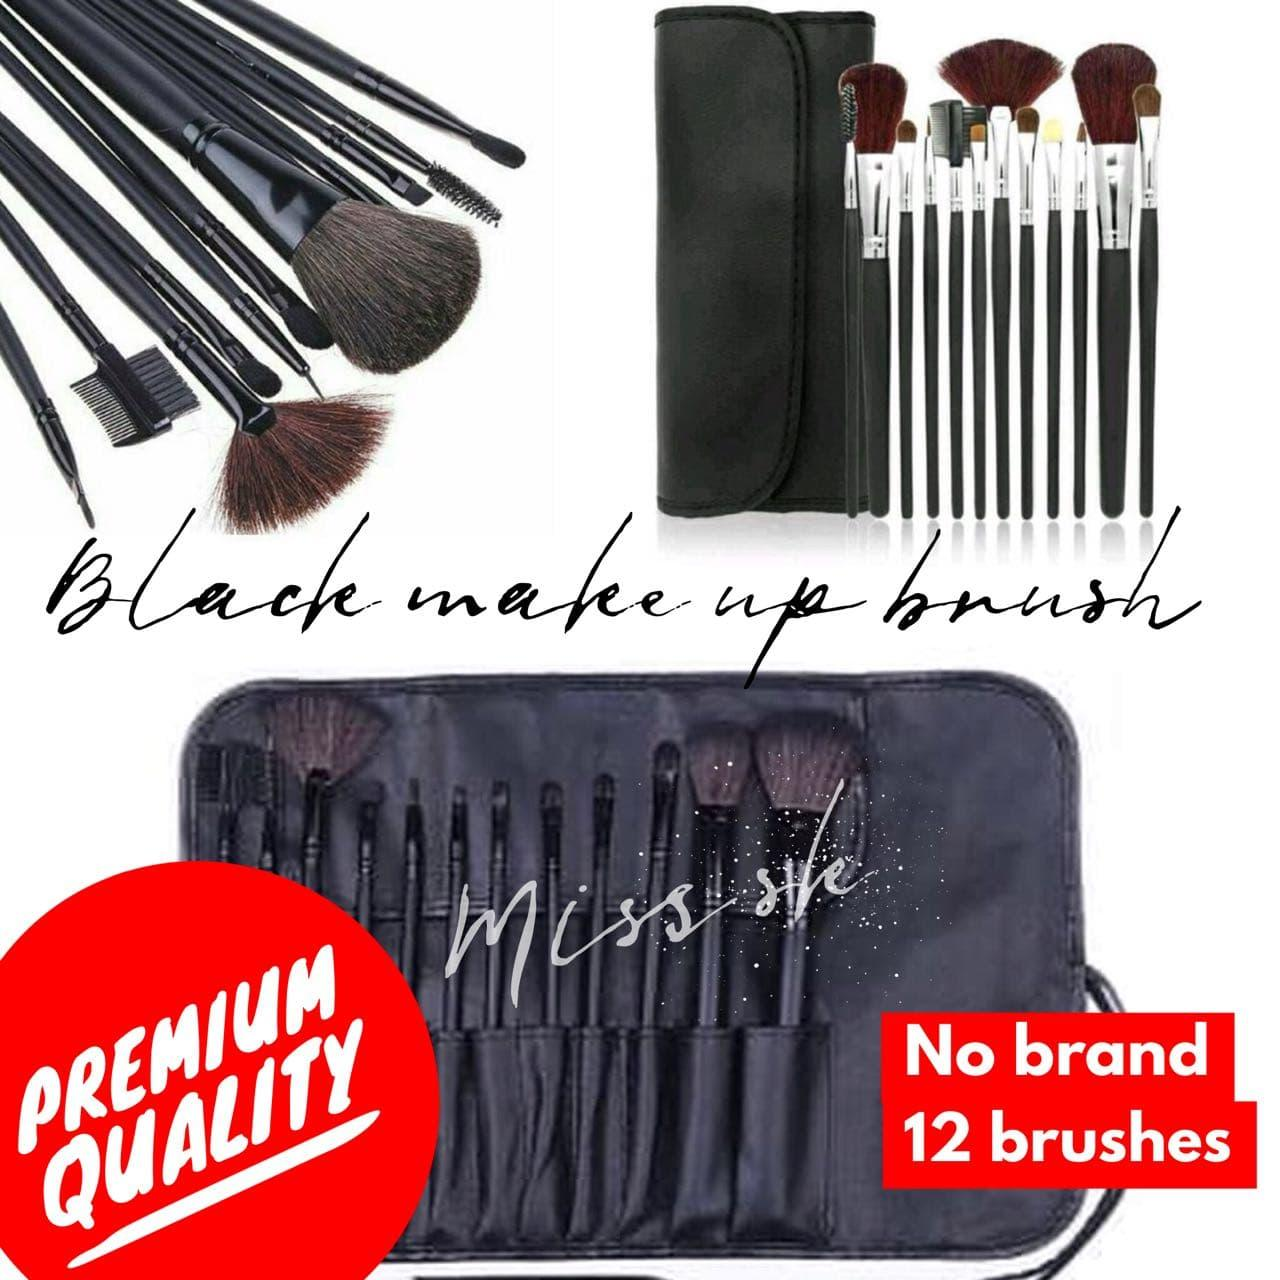 Buy Sell Cheapest Isi 12 Kuas Best Quality Product Deals Mascara Brush Naked No Brand Black Make Up